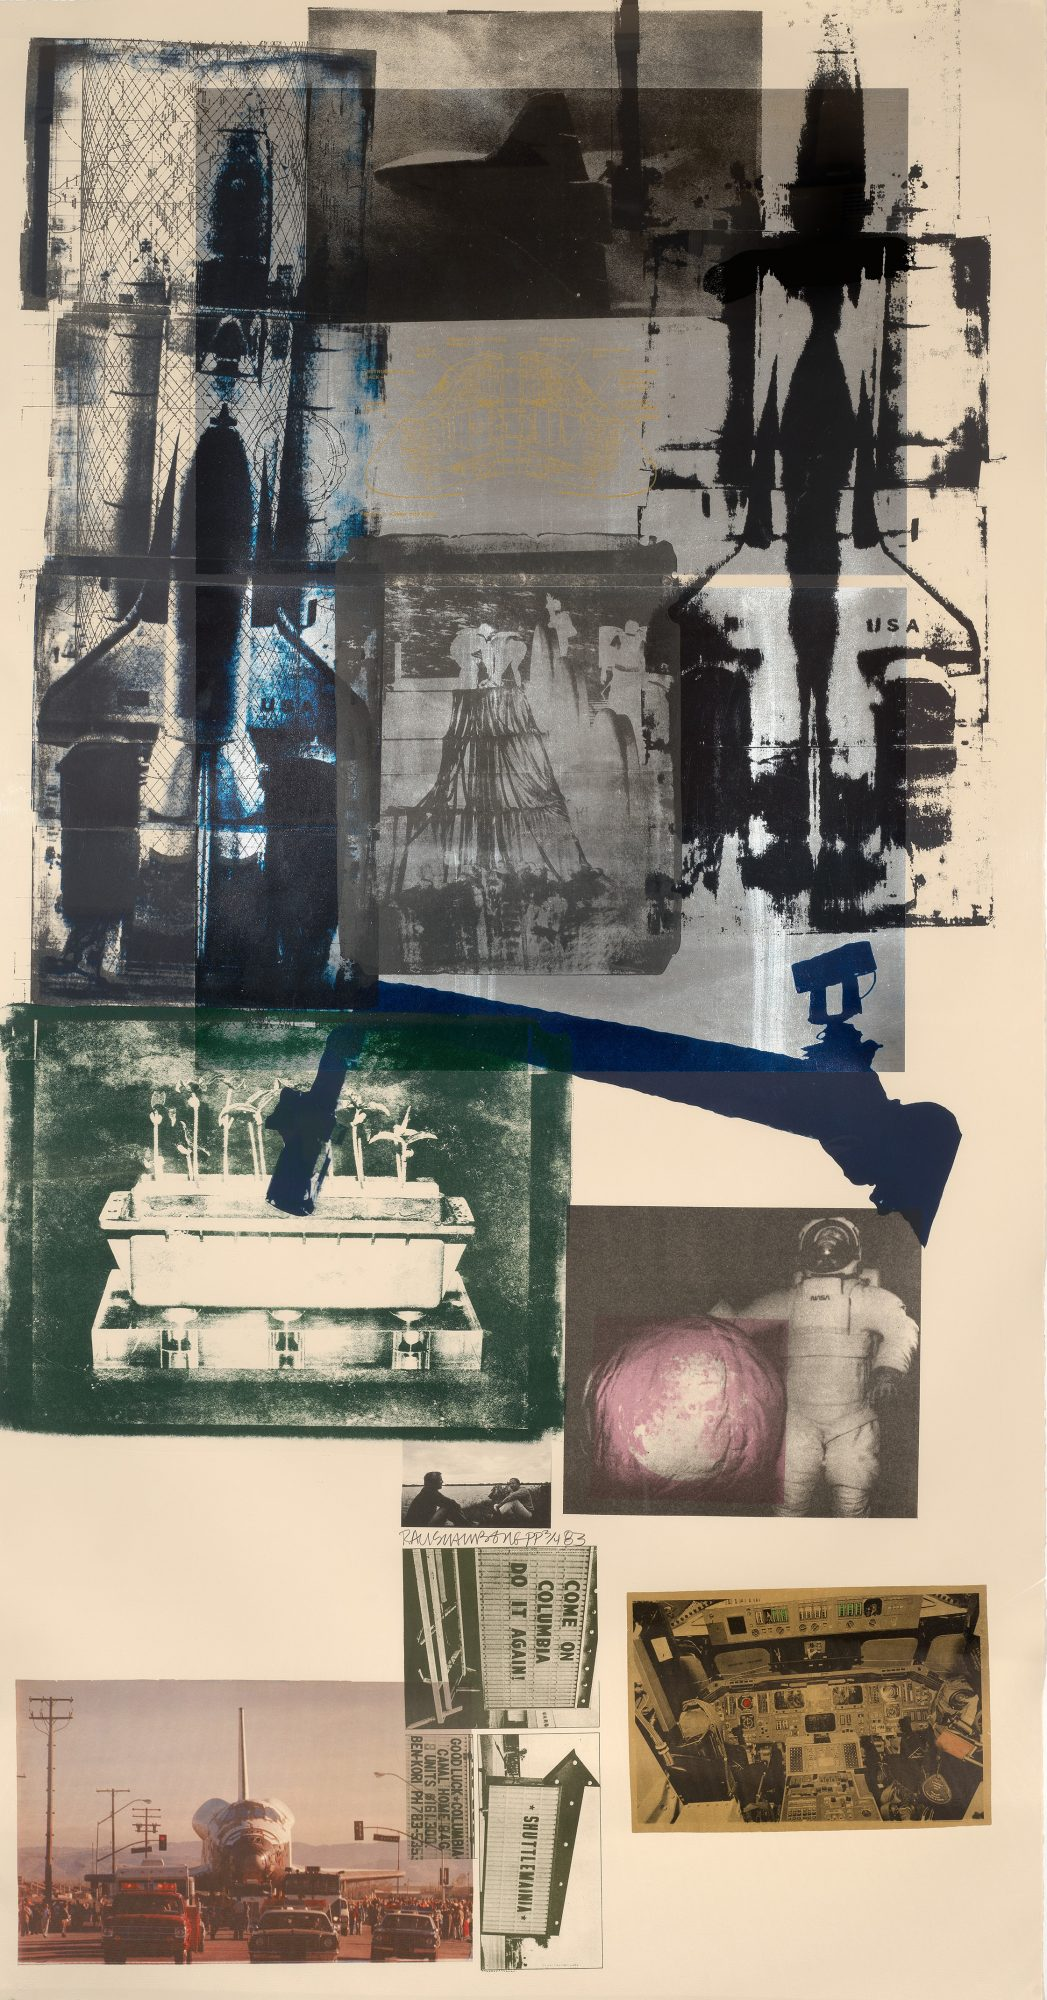 Robert Rauschenberg (American, 1925–2008) Hot Shot, 1983. Lithograph in 19 colors on Arches Cover buff paper, 81 x 42 in. Gift of Hiram Butler, MA'79 in honor of Earl A. Powell, III, Class of '68, M.2016.9